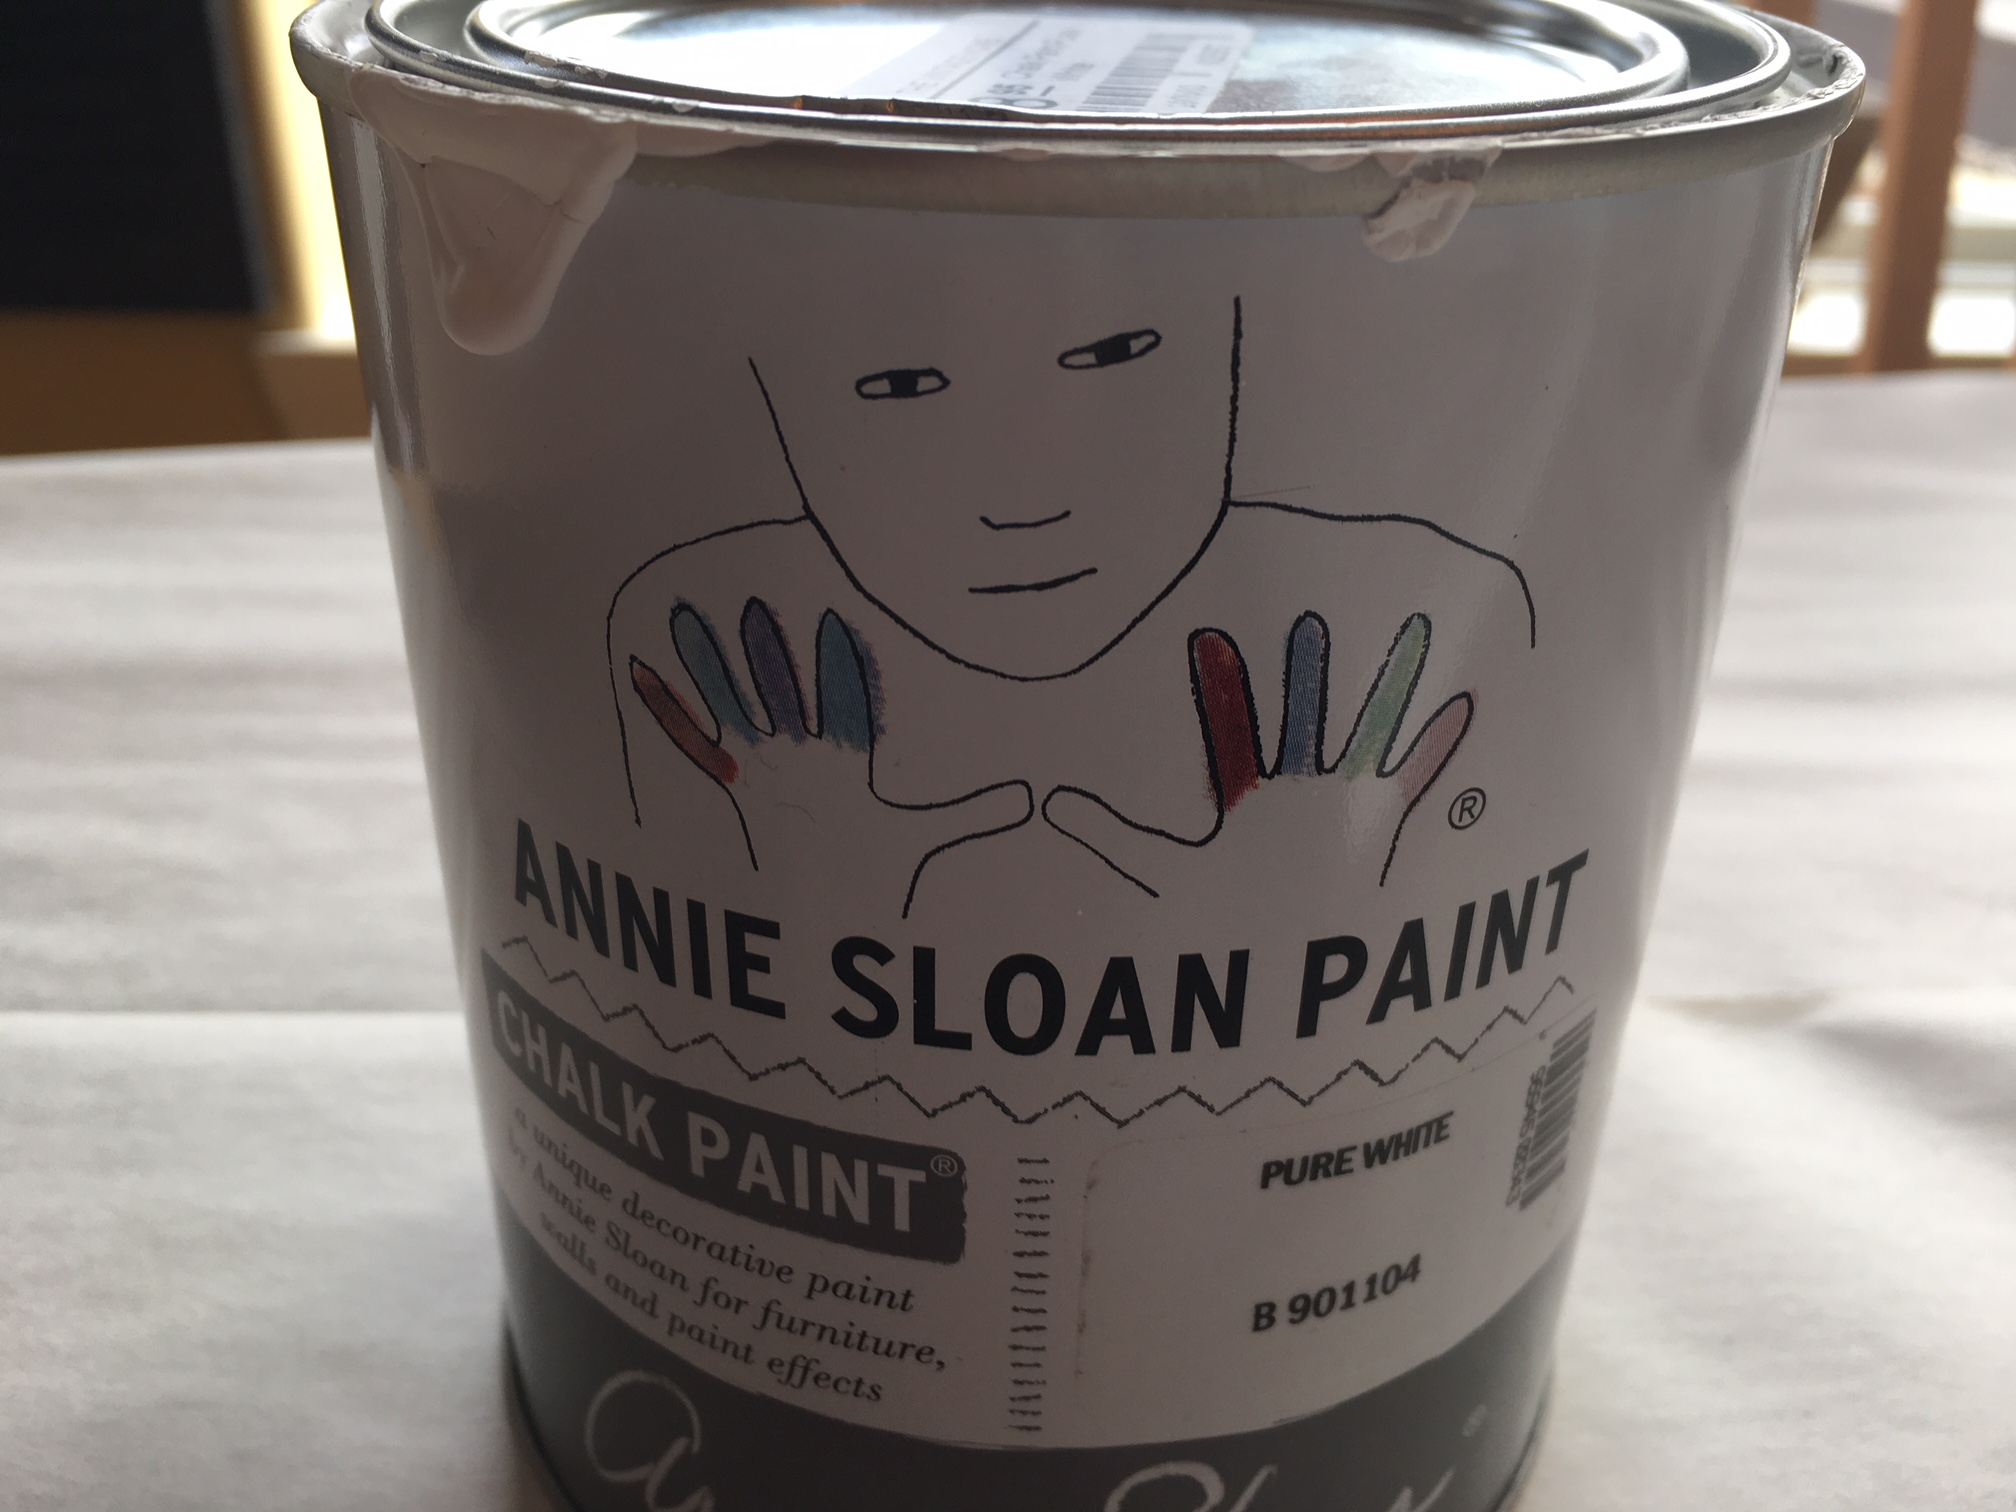 annie sloan paint, diy towel rack